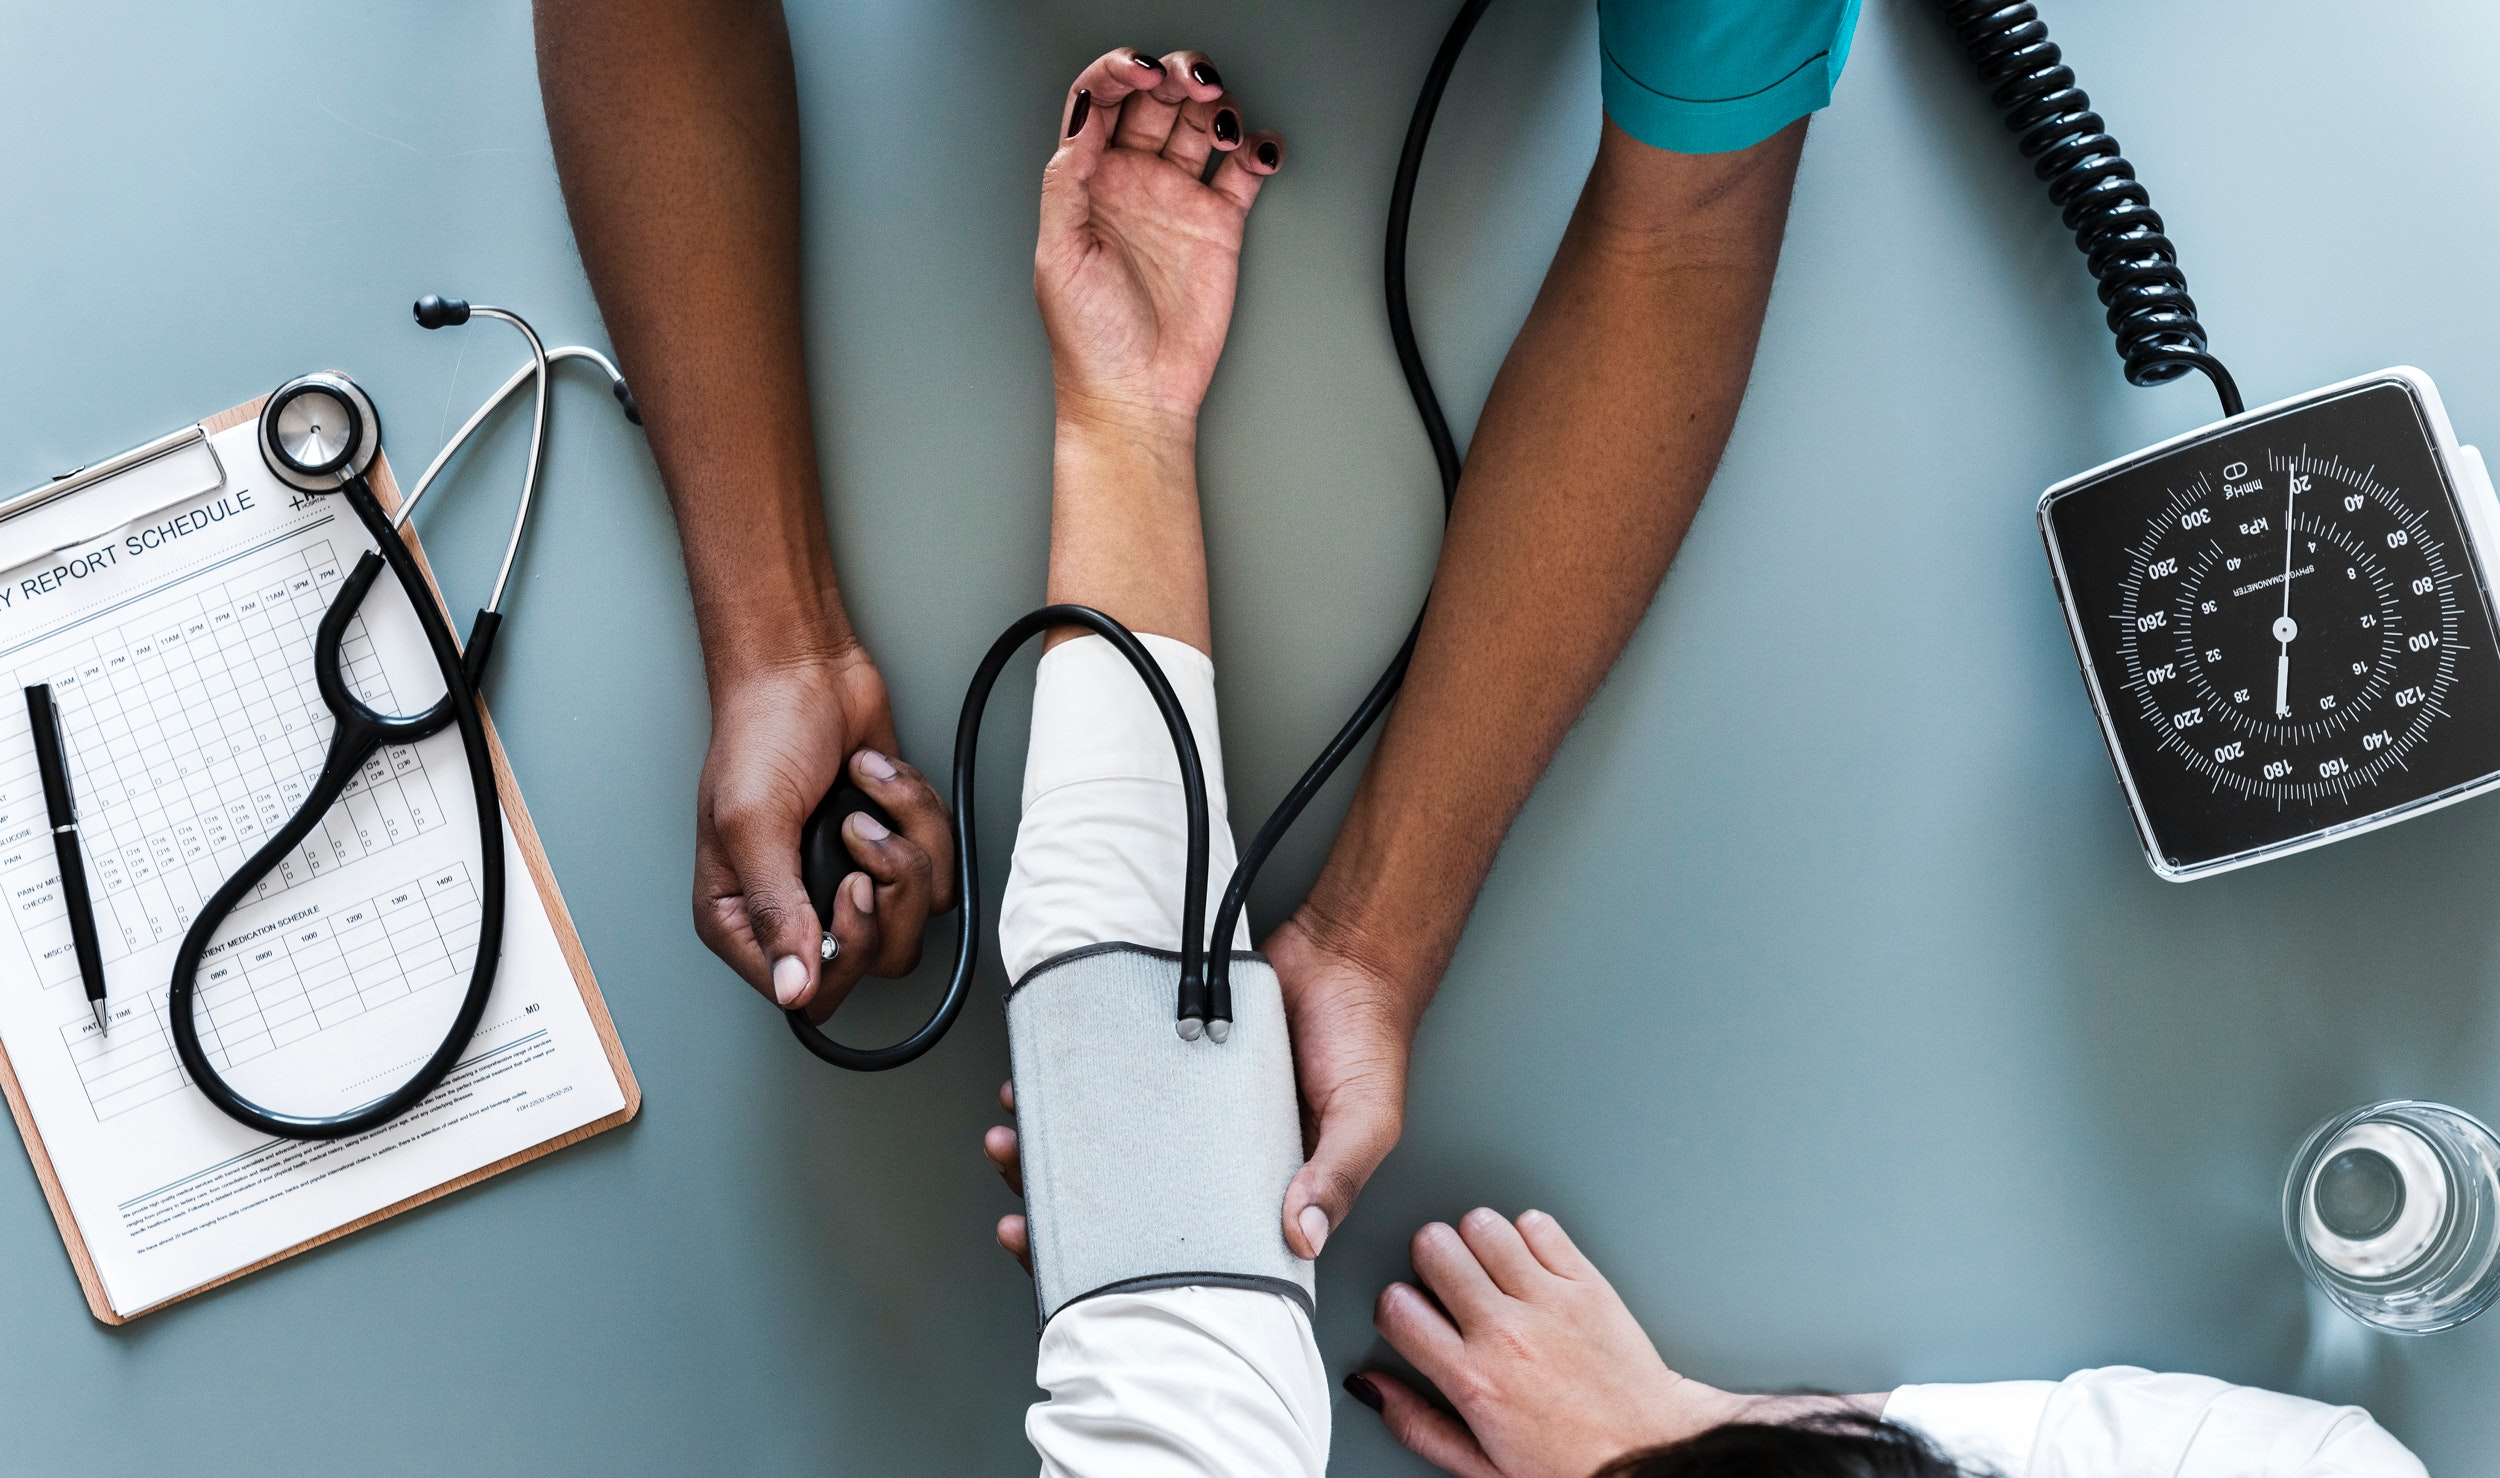 - Getting to know Healthcare Consumers